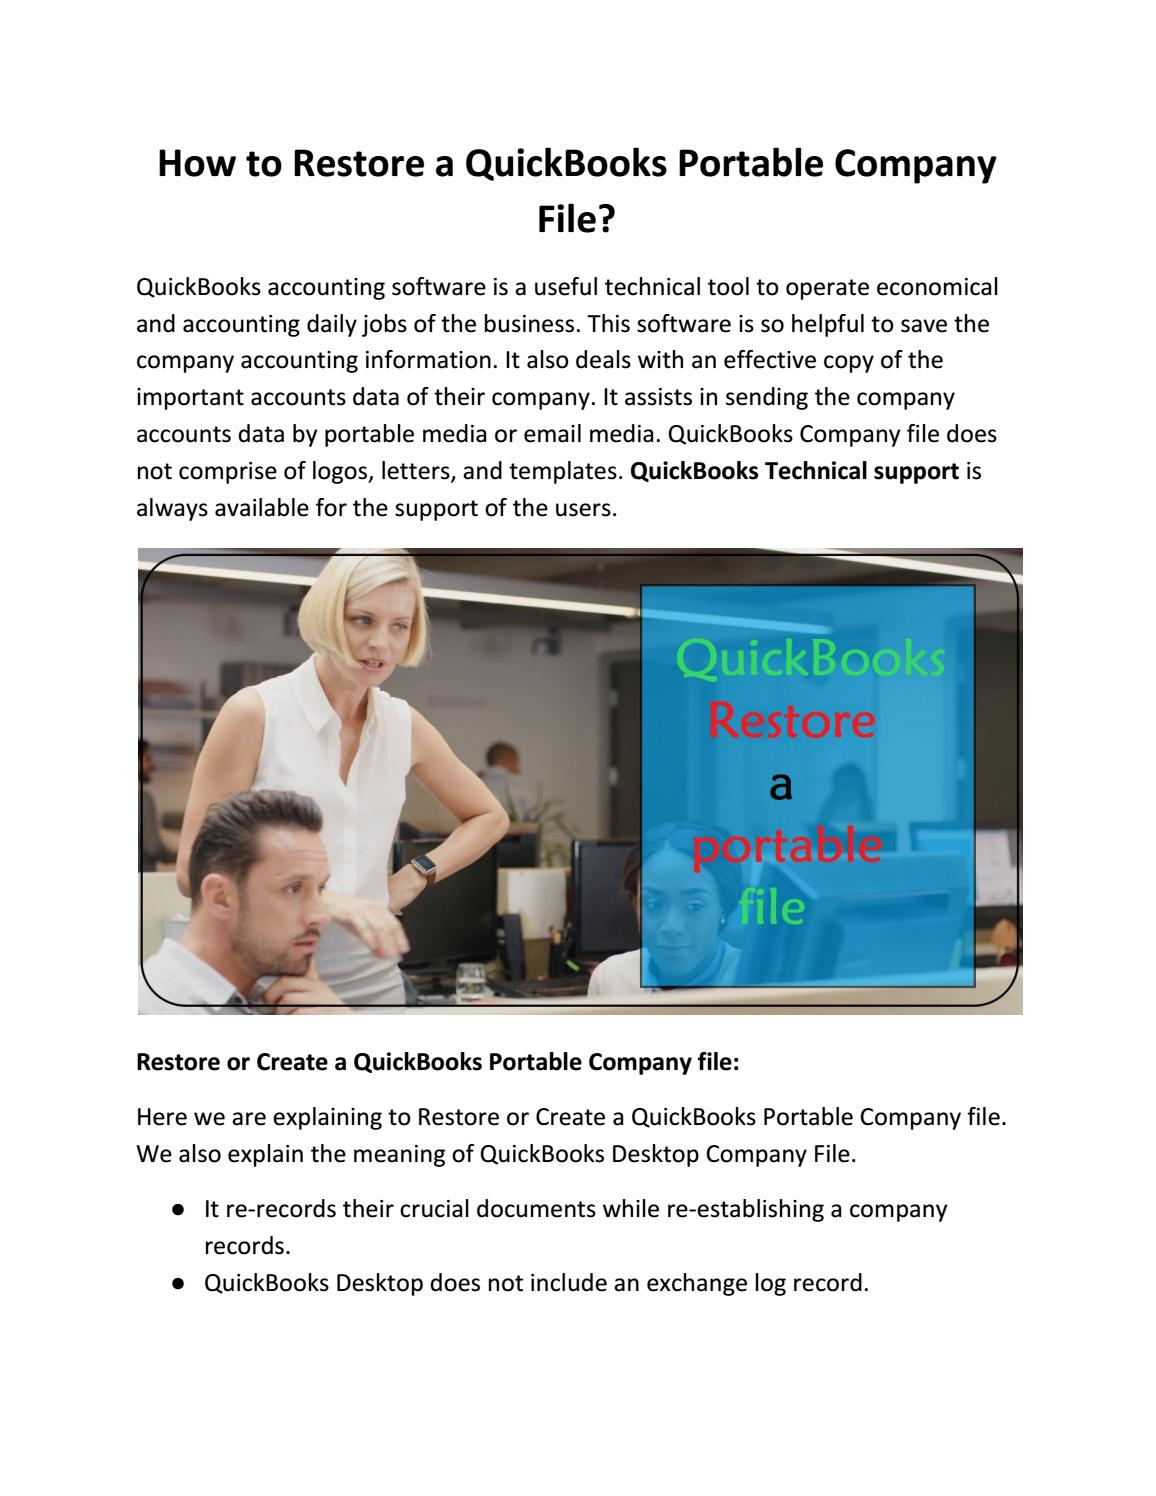 How to restore a quickbooks portable company file by 99